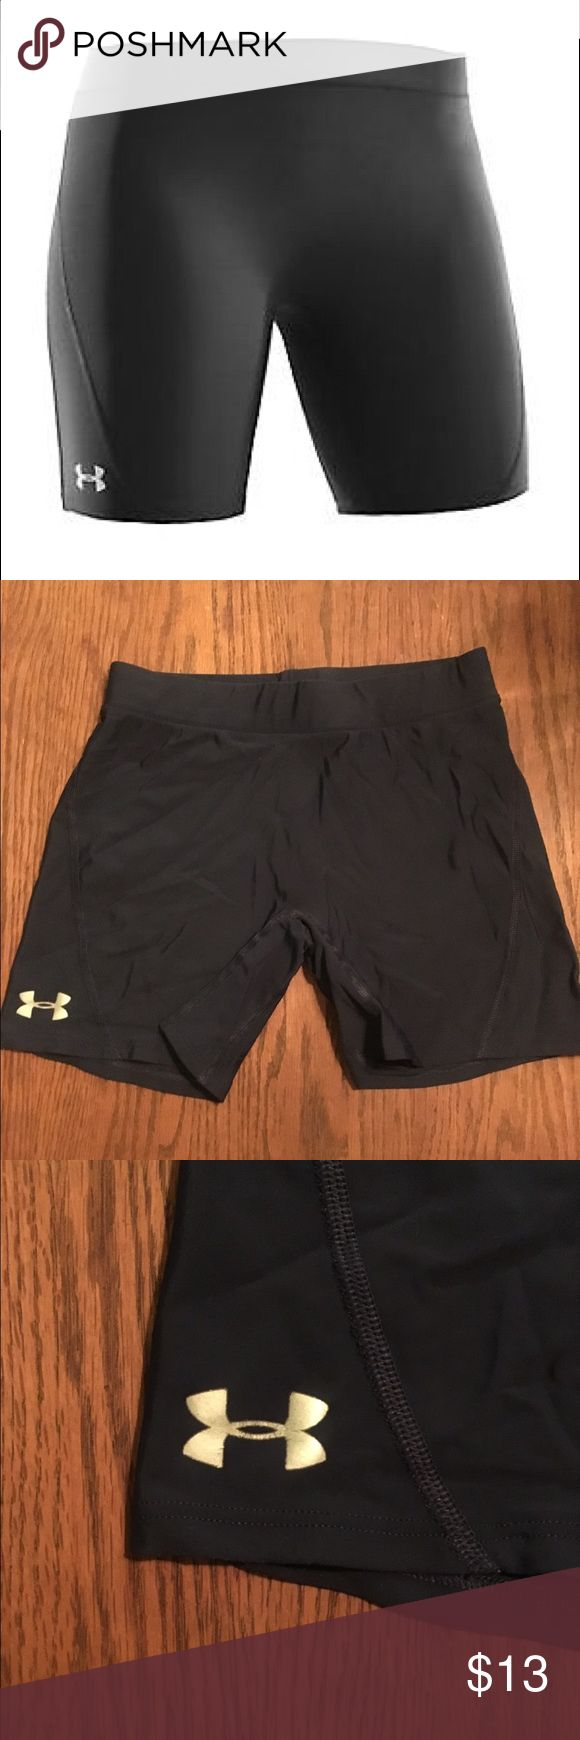 "Selling this Navy Blue Under Armour React 4"" Vollyball Shorts on Poshmark! My username is: ericaaa1. #shopmycloset #poshmark #fashion #shopping #style #forsale #Under Armour #Pants"